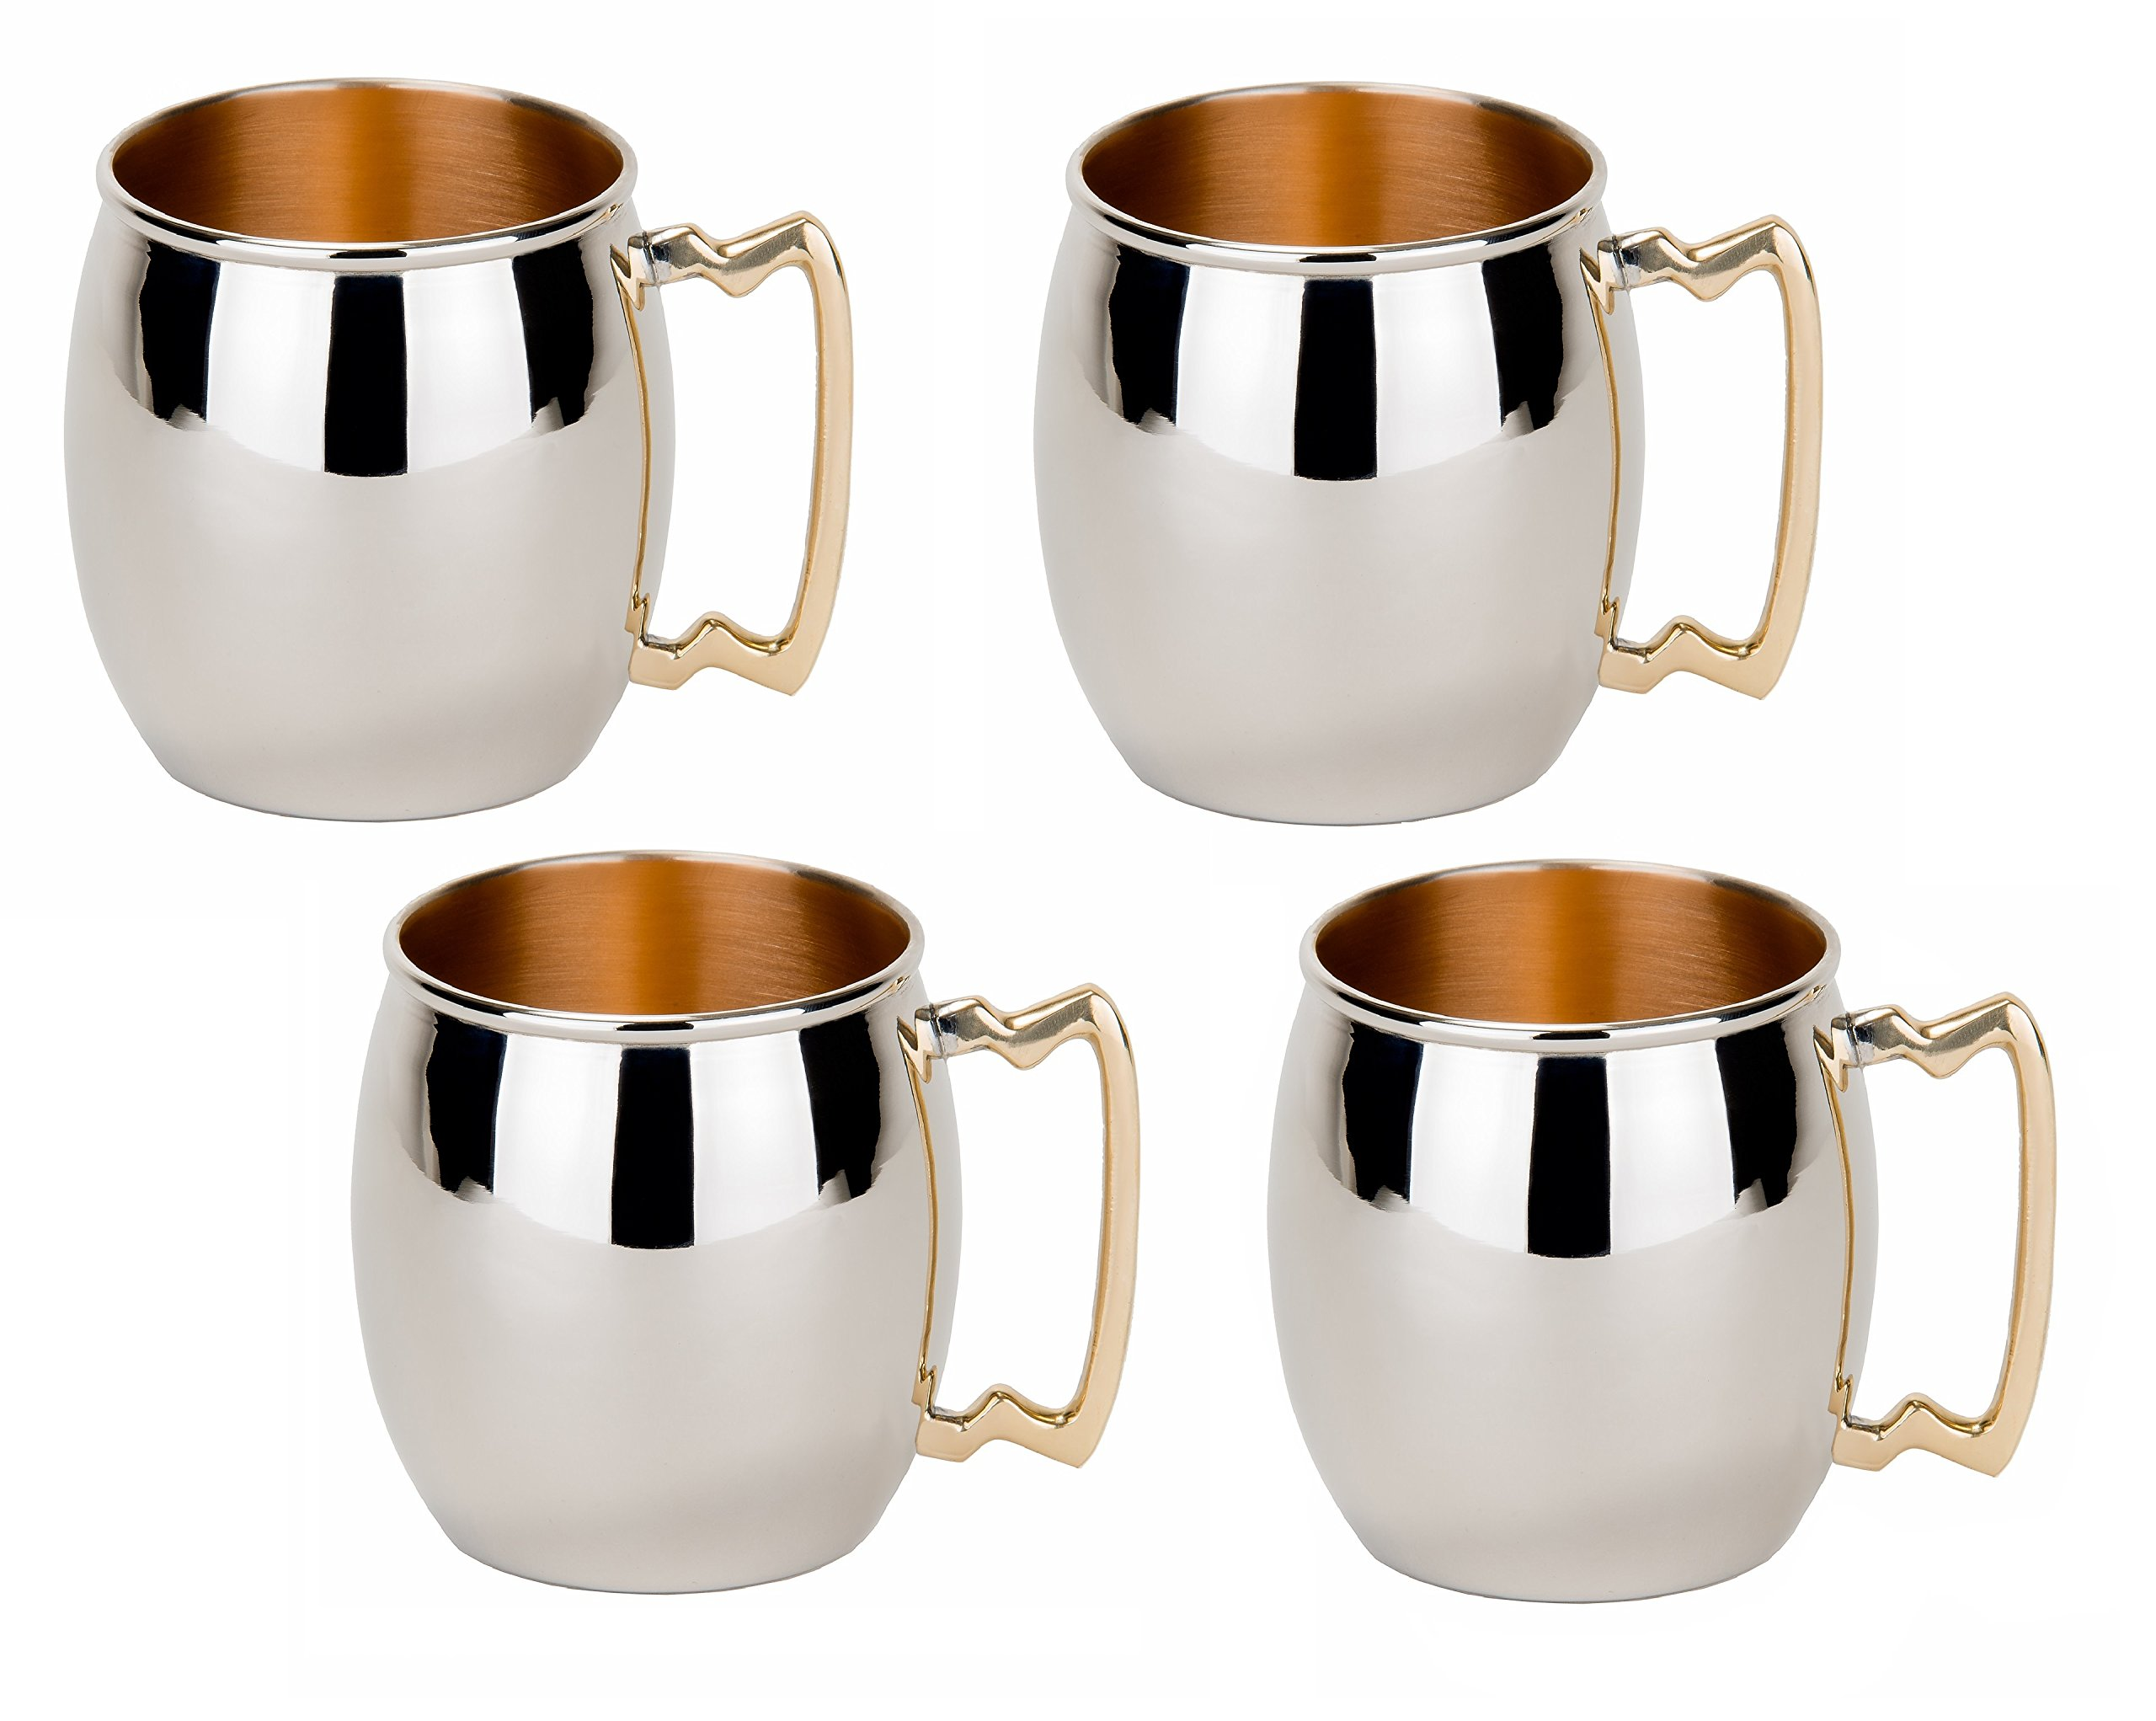 Old Dutch Inside-Out Moscow Mule Mugs, 16 oz, Set of 4, Nickel